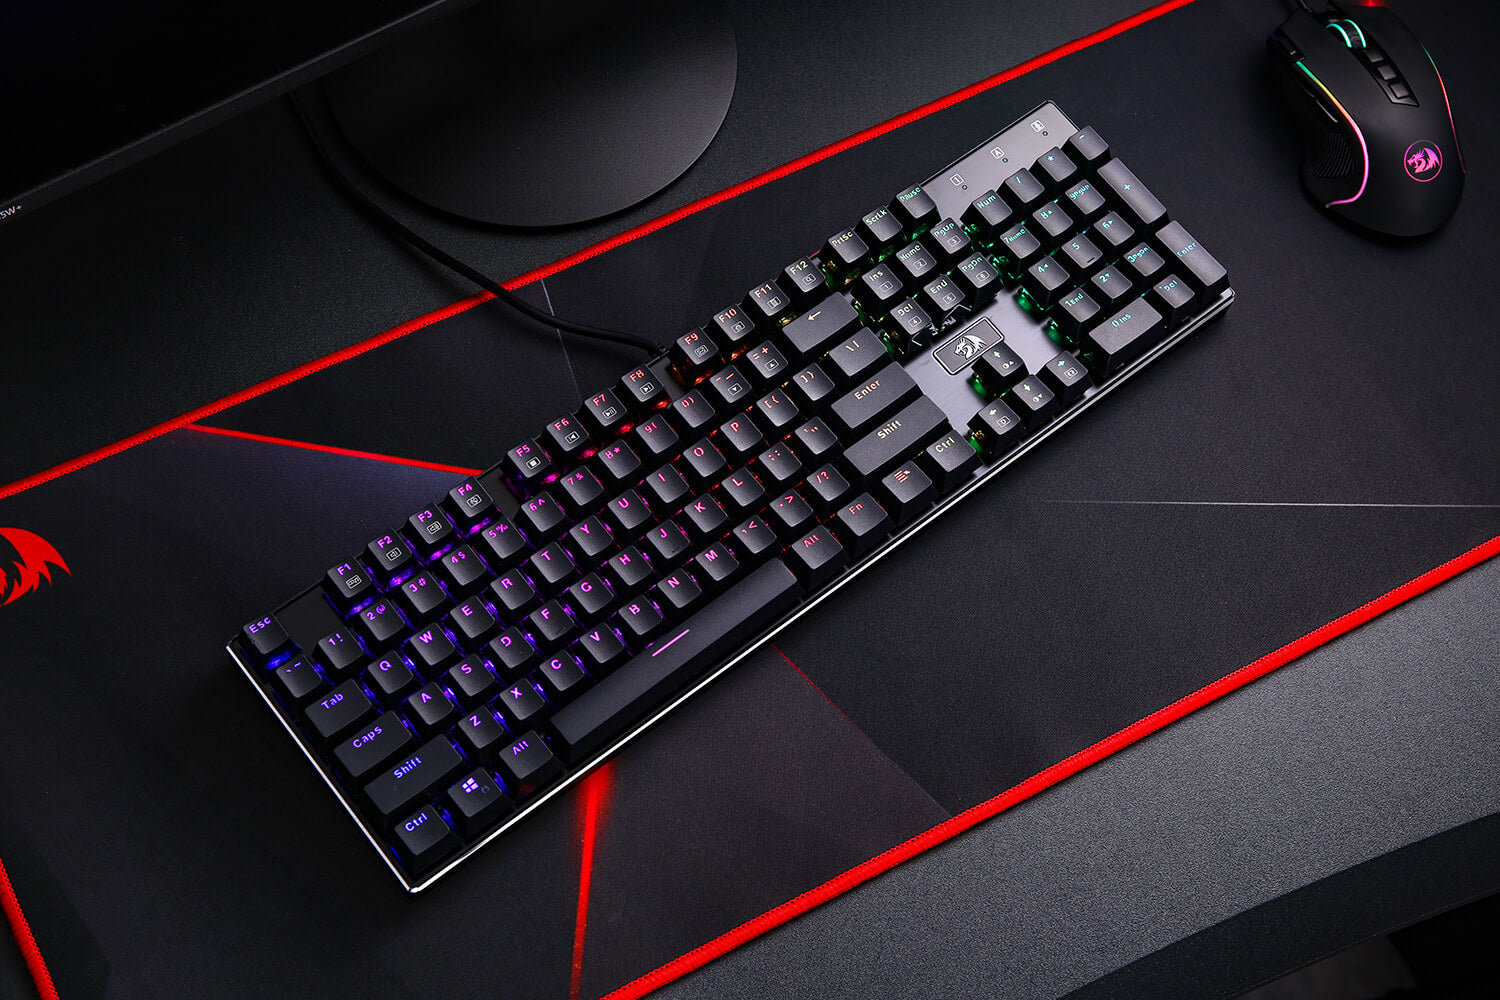 redragon k556 keyboard with red switches